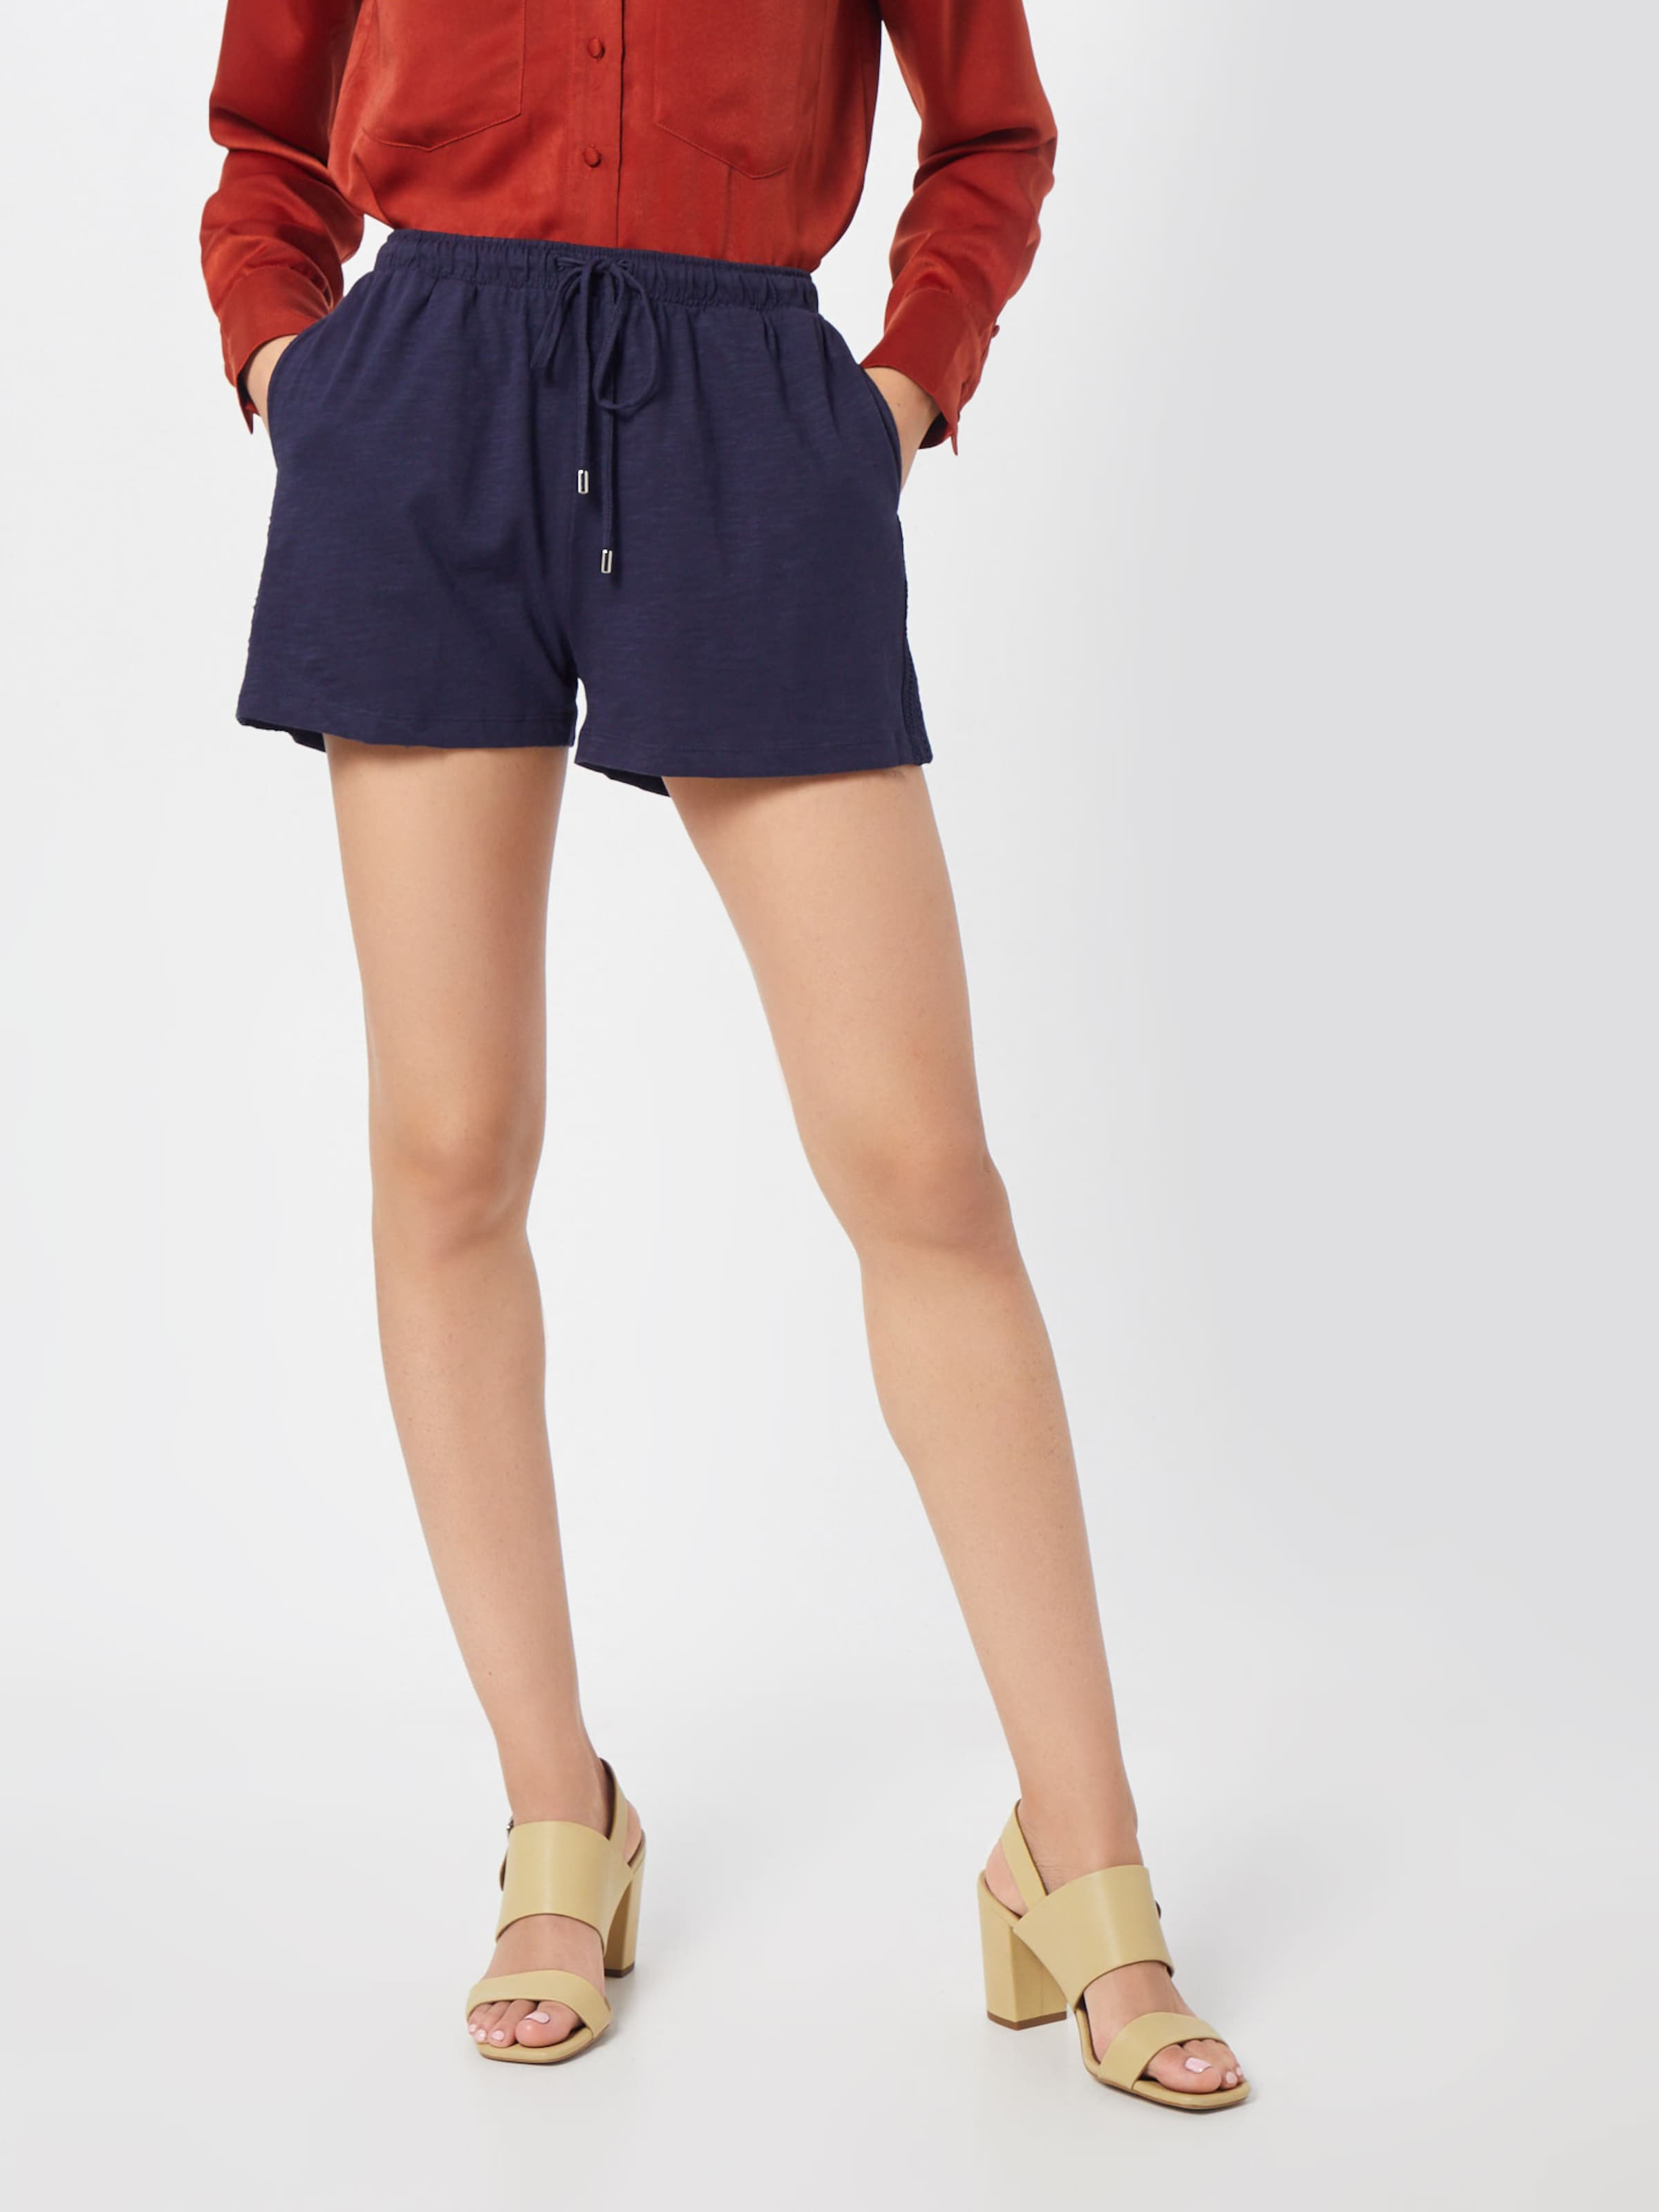 oliver Navy S S Shorts Shorts S Navy oliver In In oliver Shorts 3AR4j5L